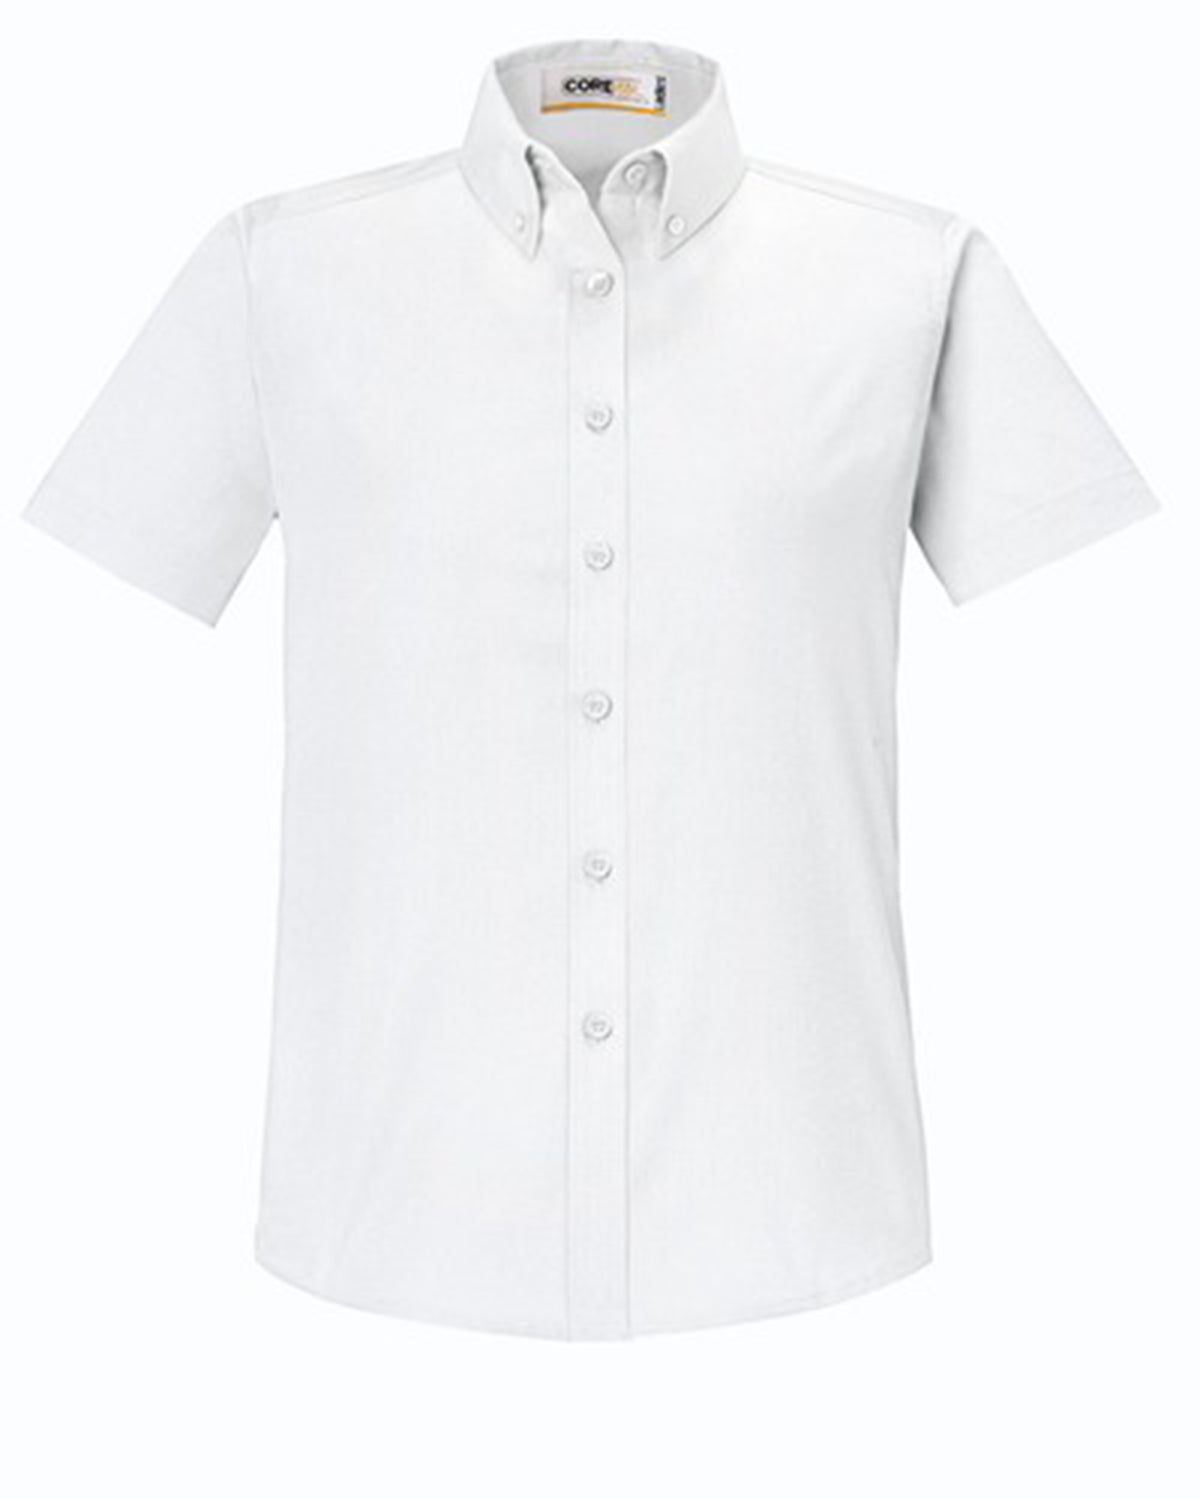 CORE 365 LADIES OPTIMUM SHORT SLEEVE TWILL DRESS SHIRT